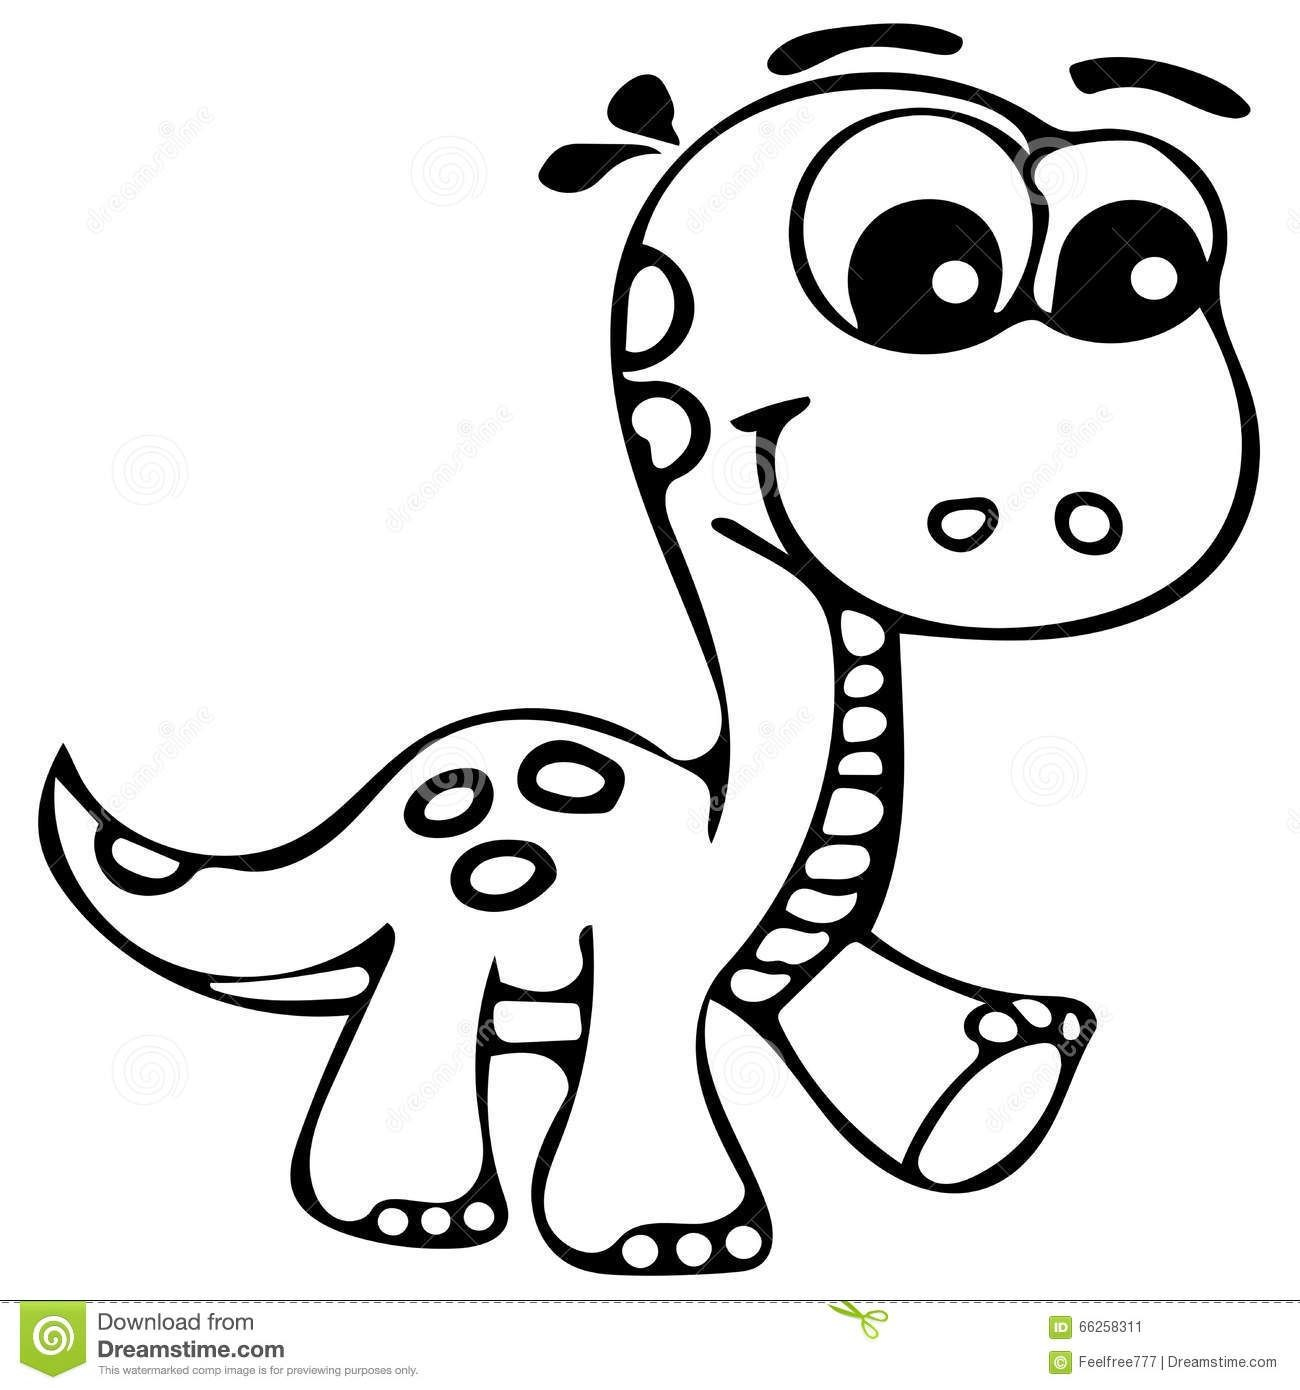 dinosaur pictures for kids cute dinosaur drawing free download on clipartmag for pictures kids dinosaur